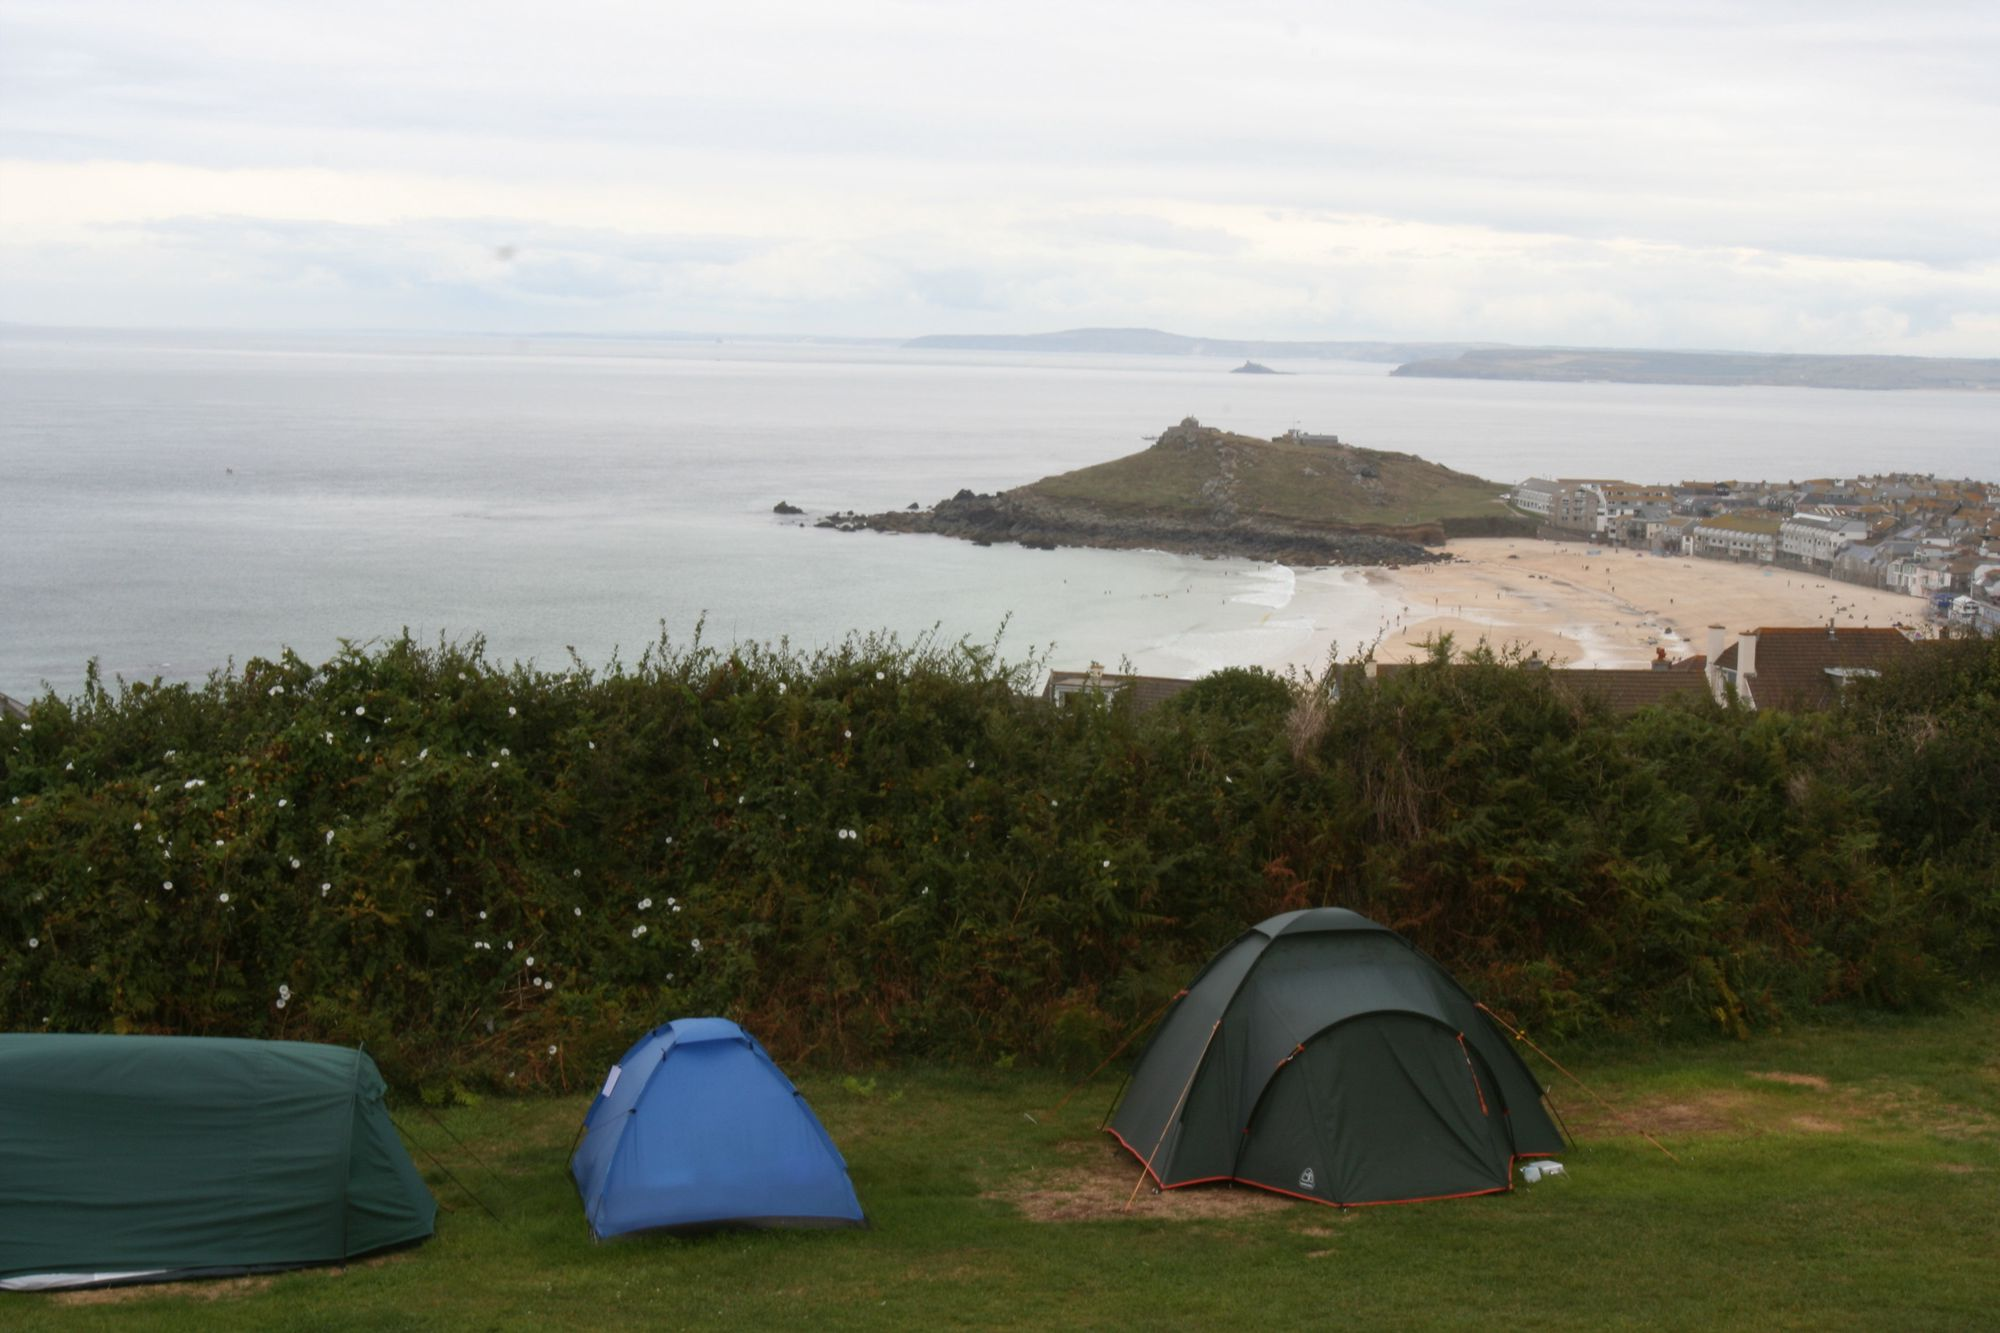 tling scene and stimulating coast and countryside.